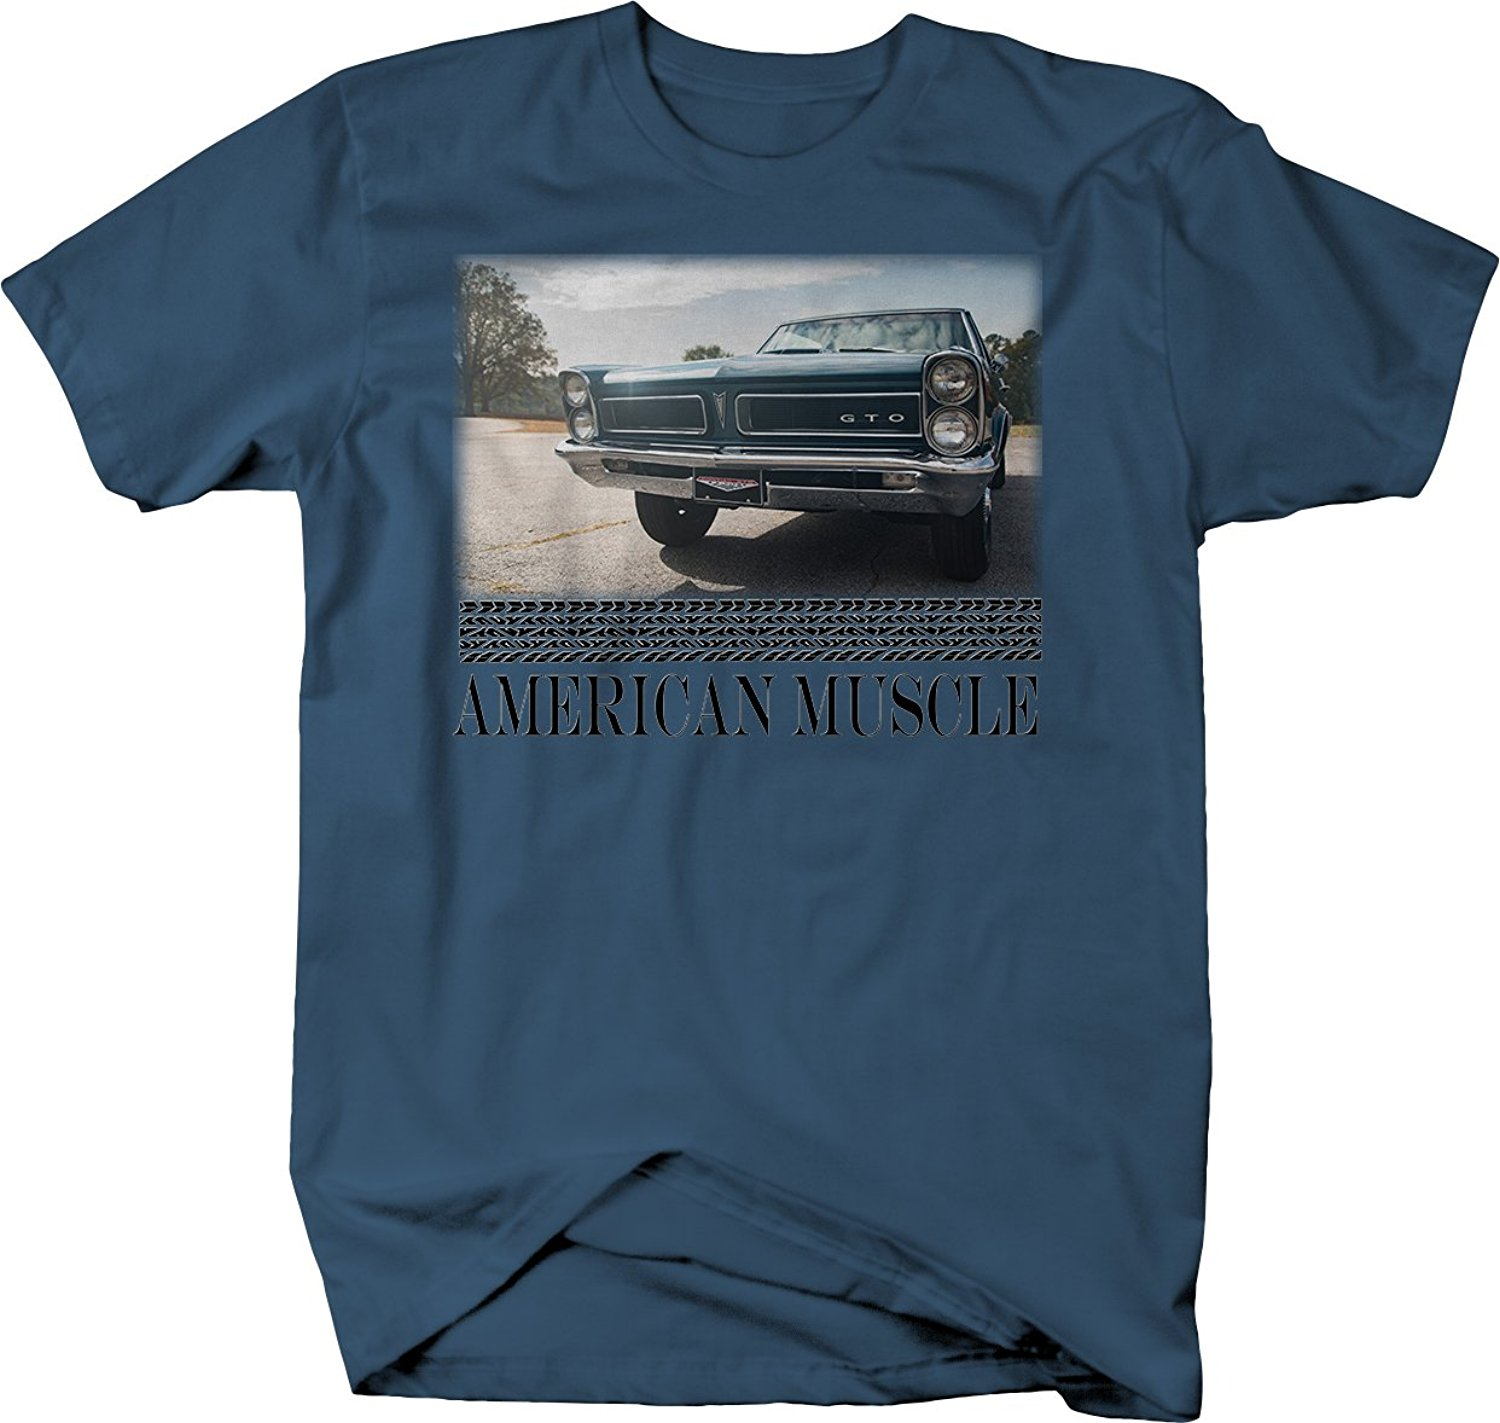 2019 New Summer Slim Tee Shirt American Muscle Pontiac GTO <font><b>V8</b></font> Double Headlights Hotrod <font><b>Tshirt</b></font> Fashion T-shirt image